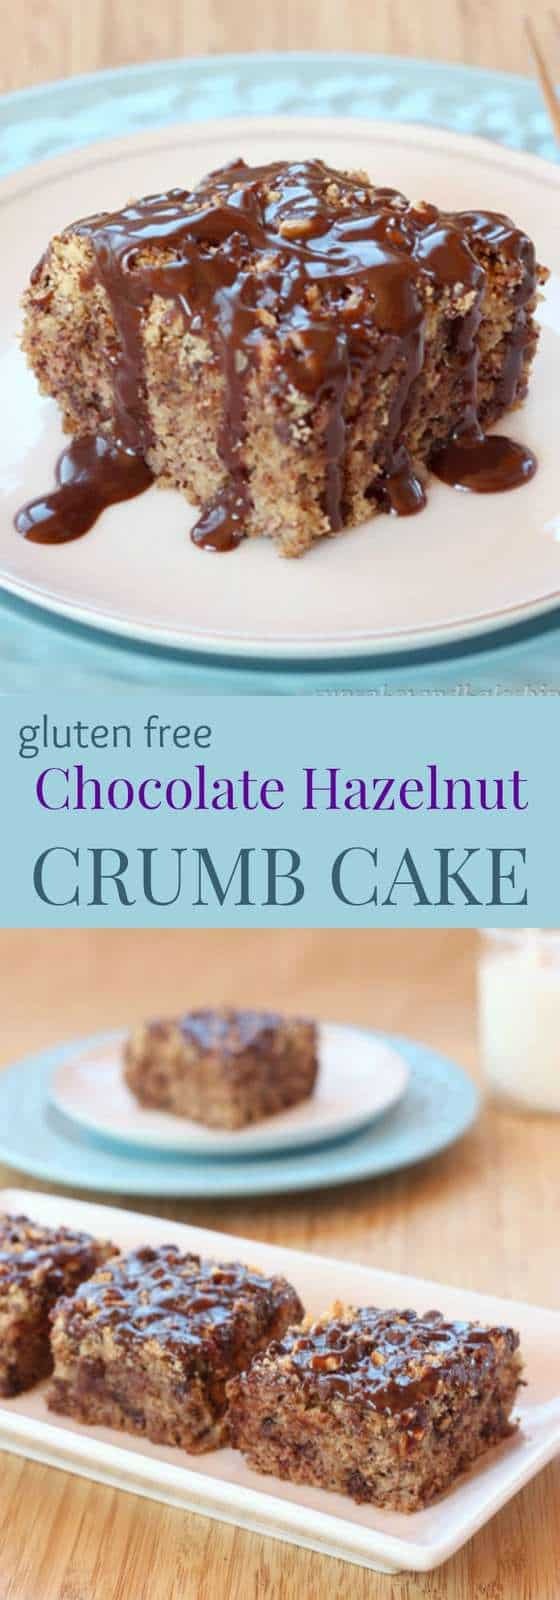 Gluten-Free Chocolate Hazelnut Crumb Cake - for breakfast or dessert, this simple gluten free coffee cake recipe gets even better when you drizzle it with Nutella glaze | cupcakesandkalechips.com